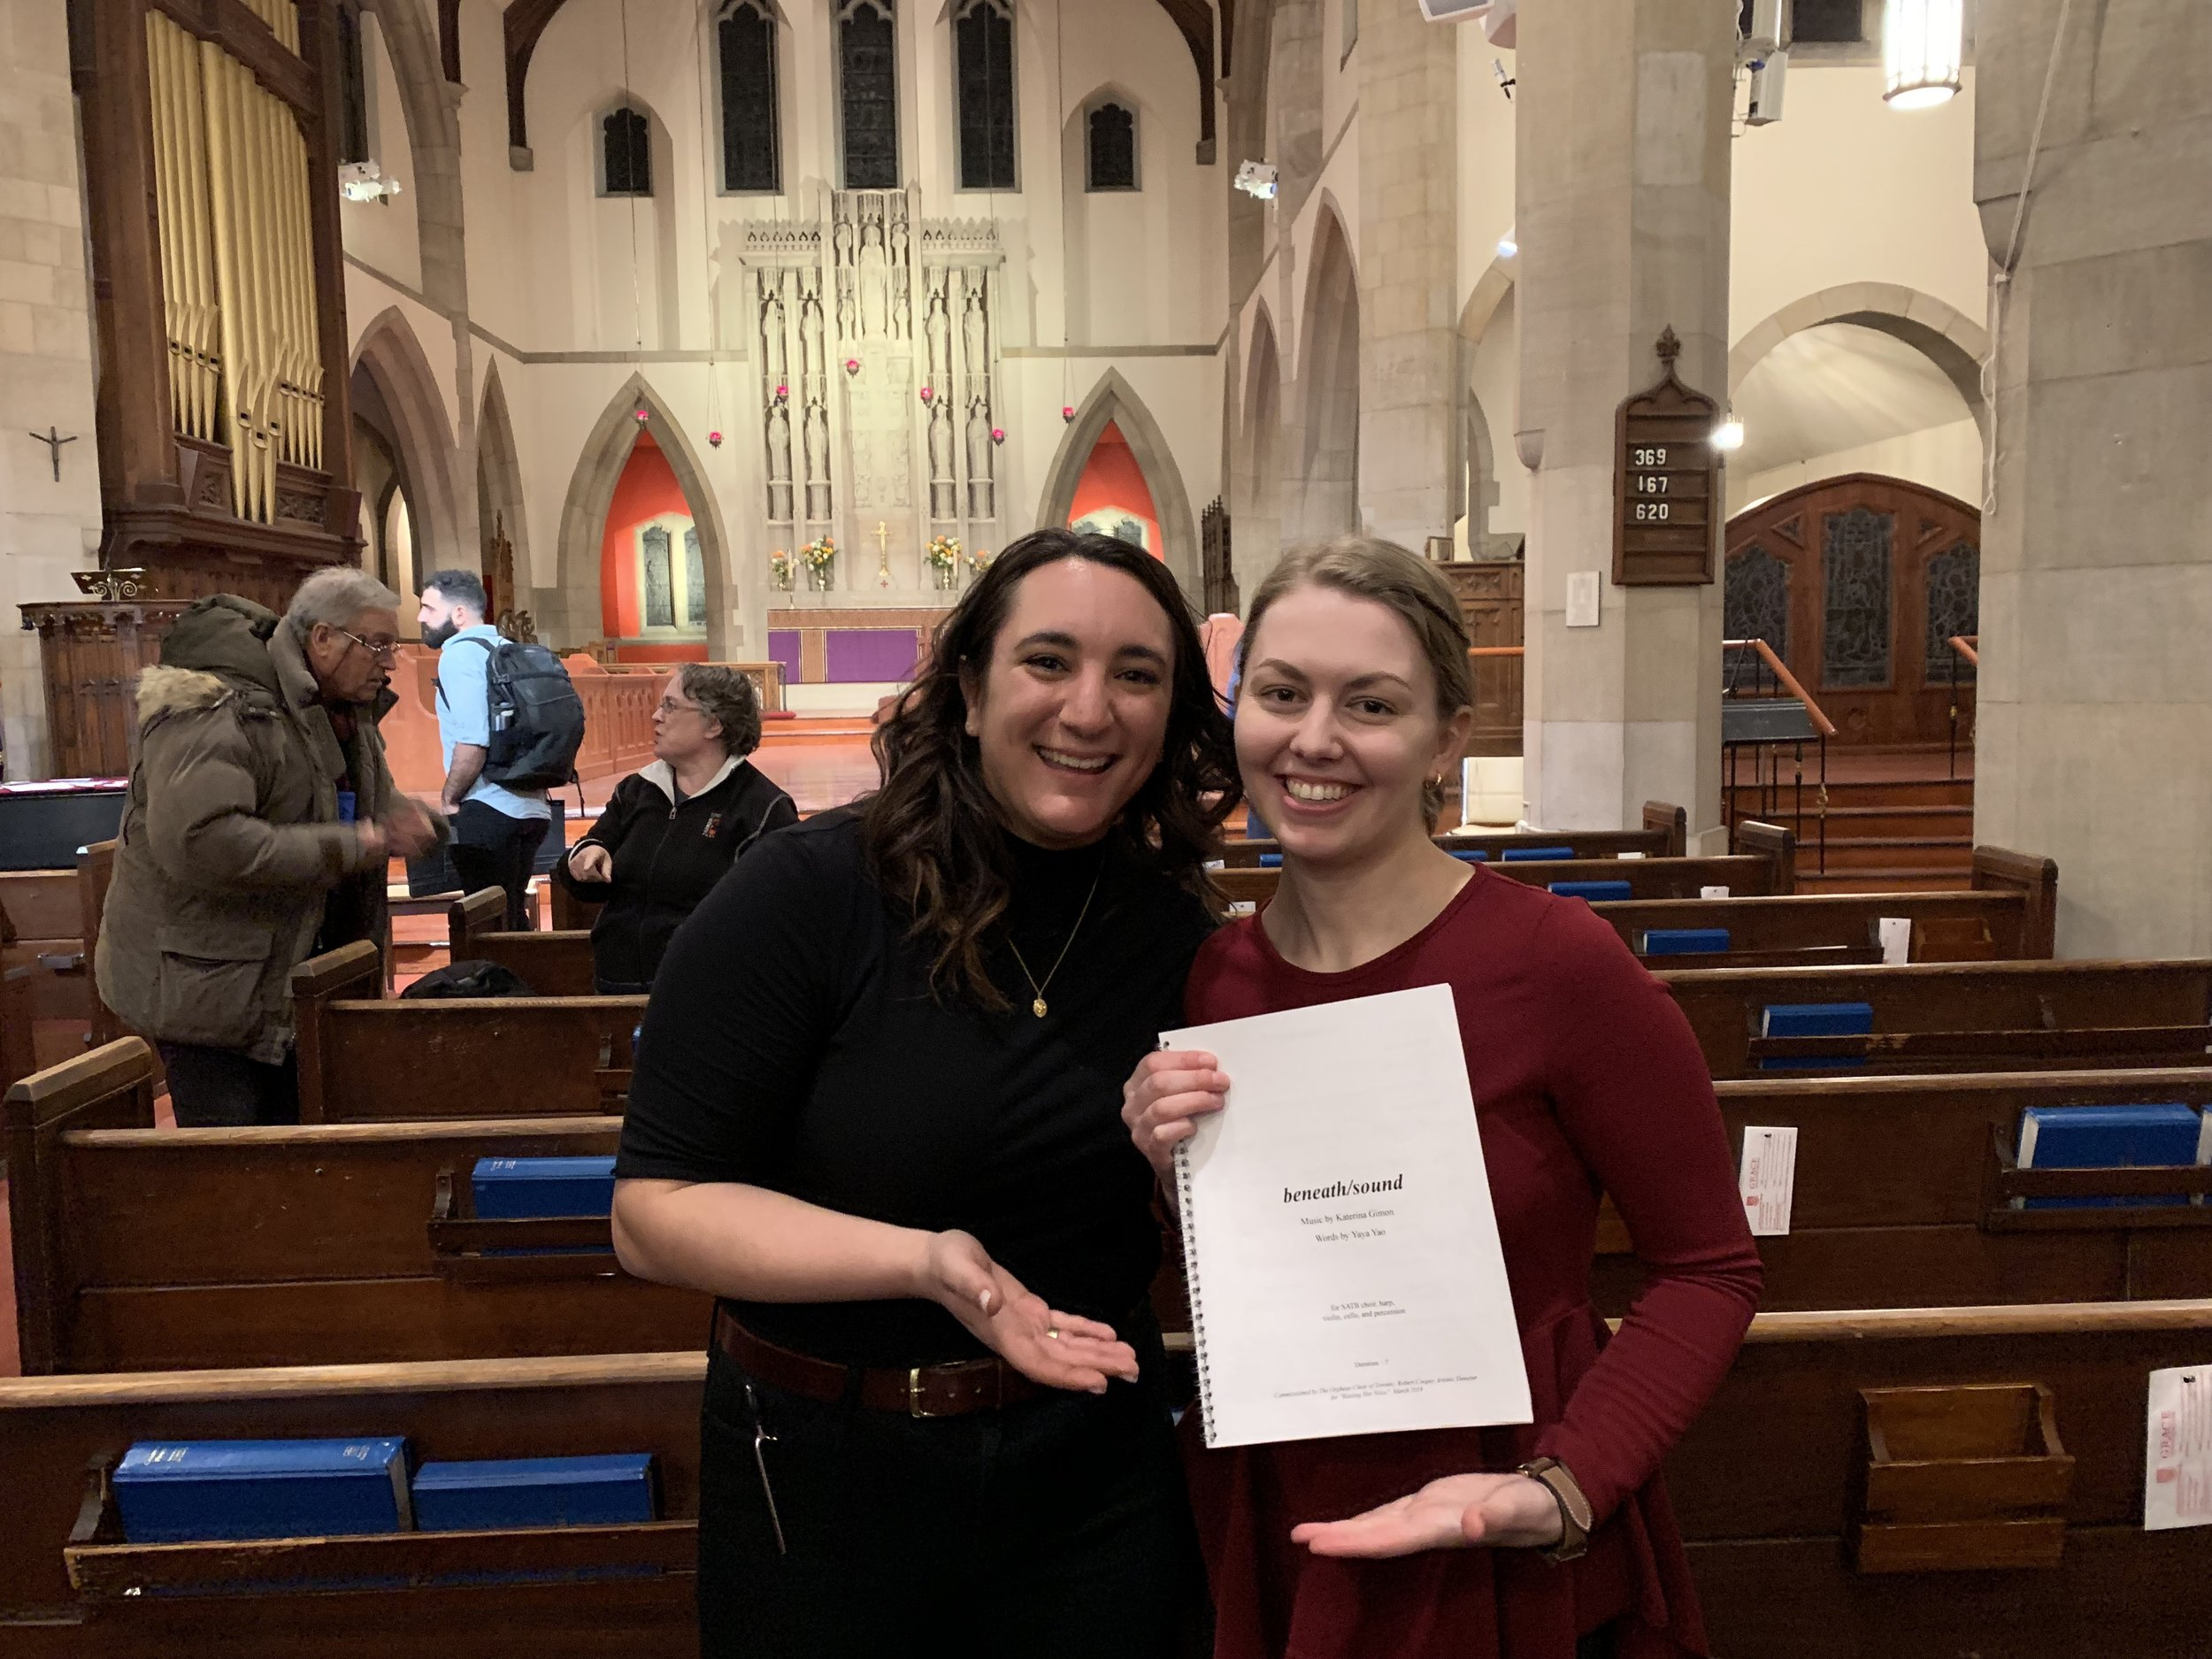 """Elise and Katerina Gimon, Myriad Composer in Residence at Orpheus Choir of Toronto March 8 2019 """"Raising Her Voice"""". Elise conducted the premier of Katerina's composition  beneath/sound  (take a listen on the listen page!)."""